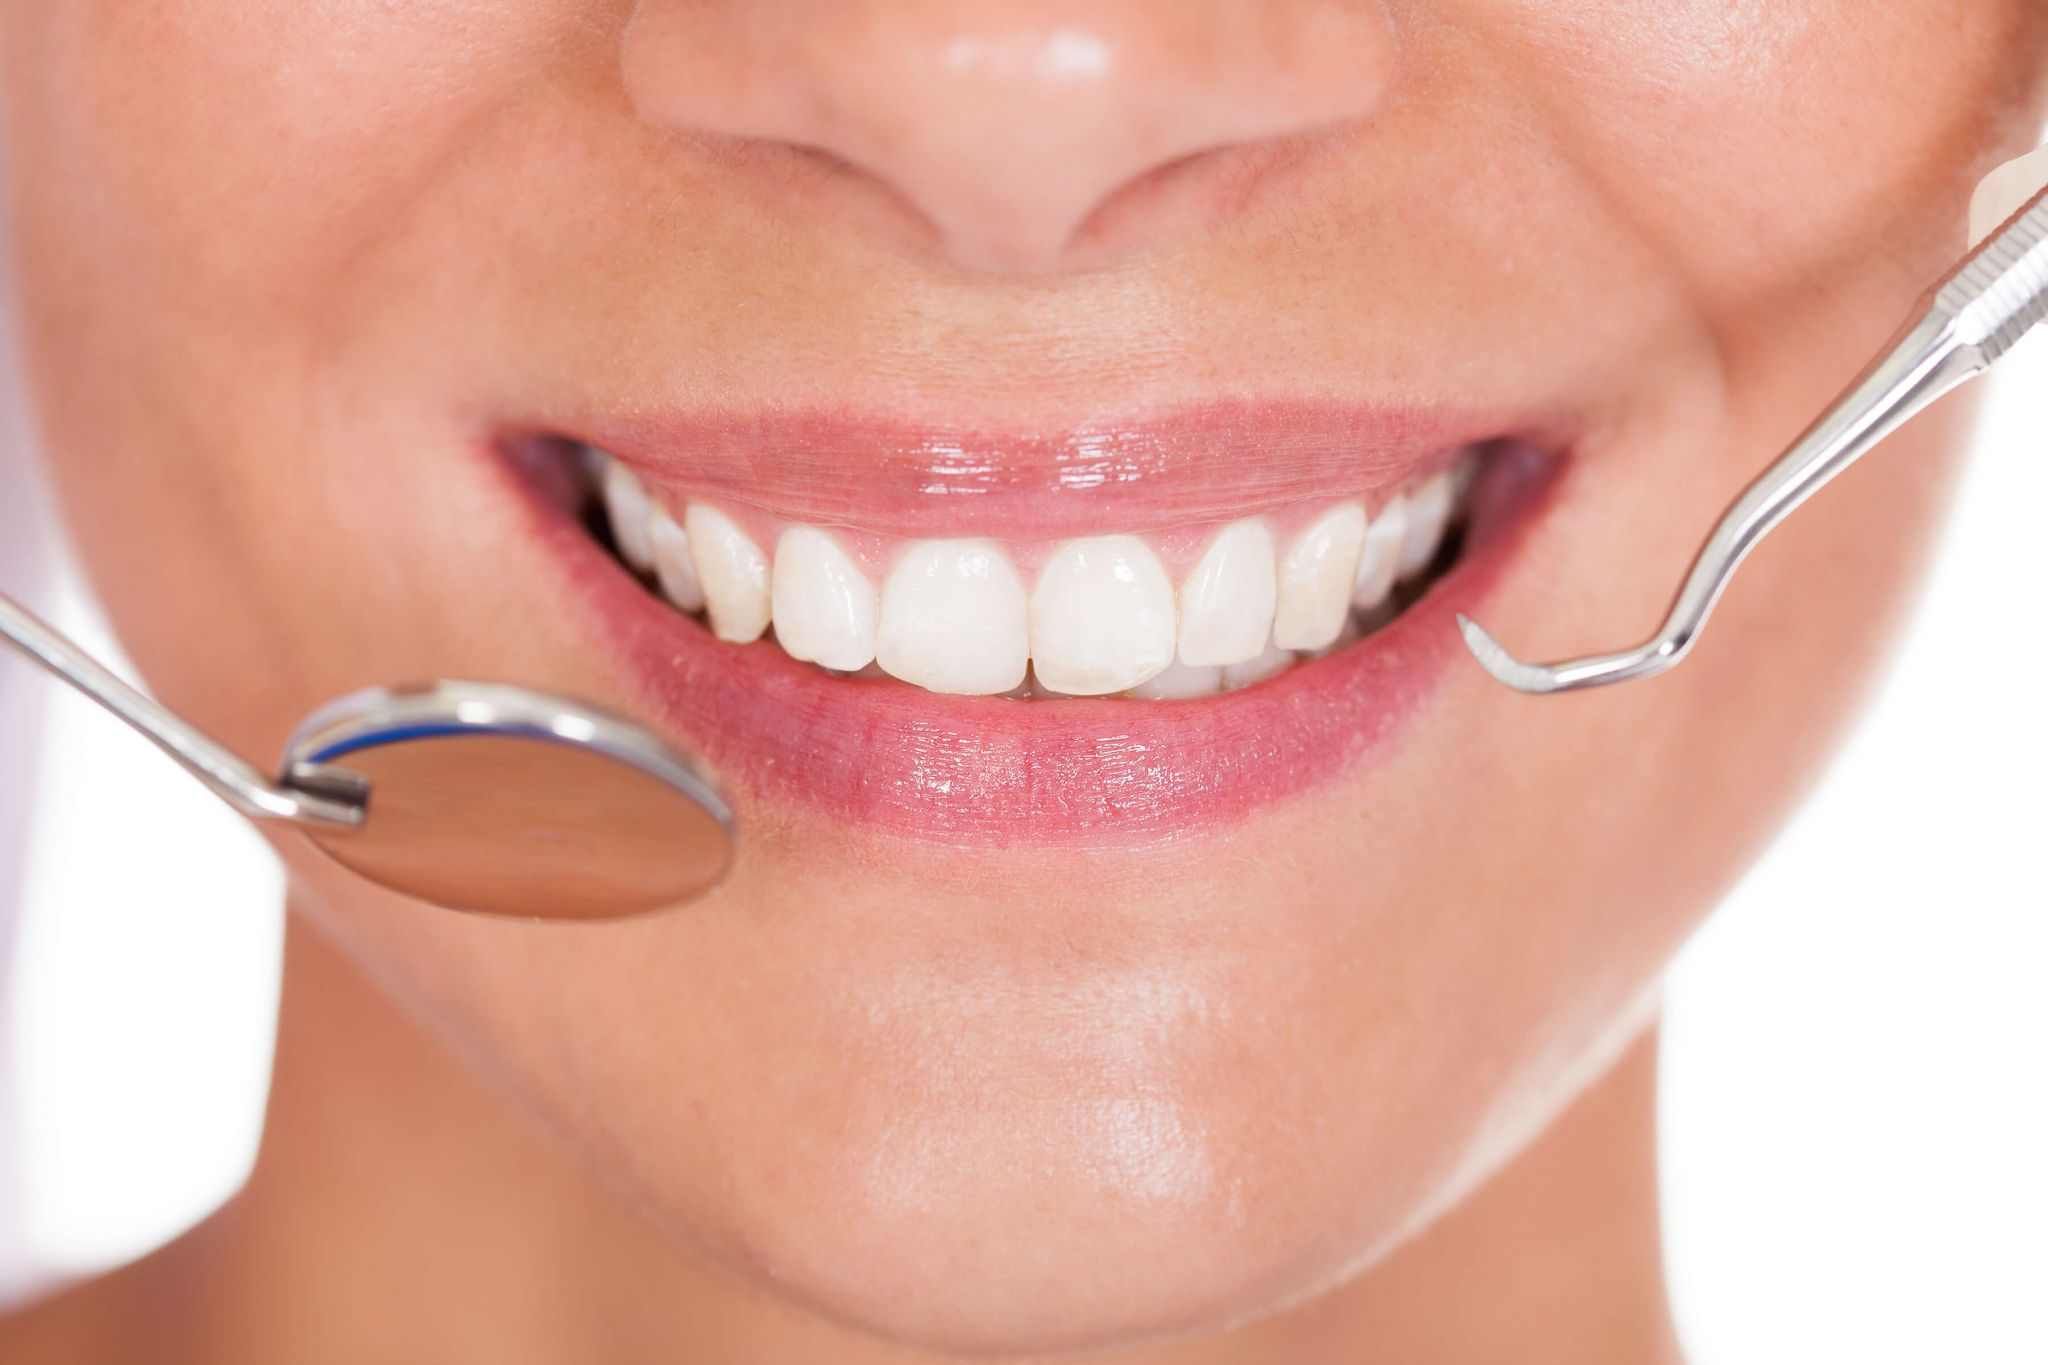 keep your gums healthy - woman's smiling mouth with white teeth and dental implements